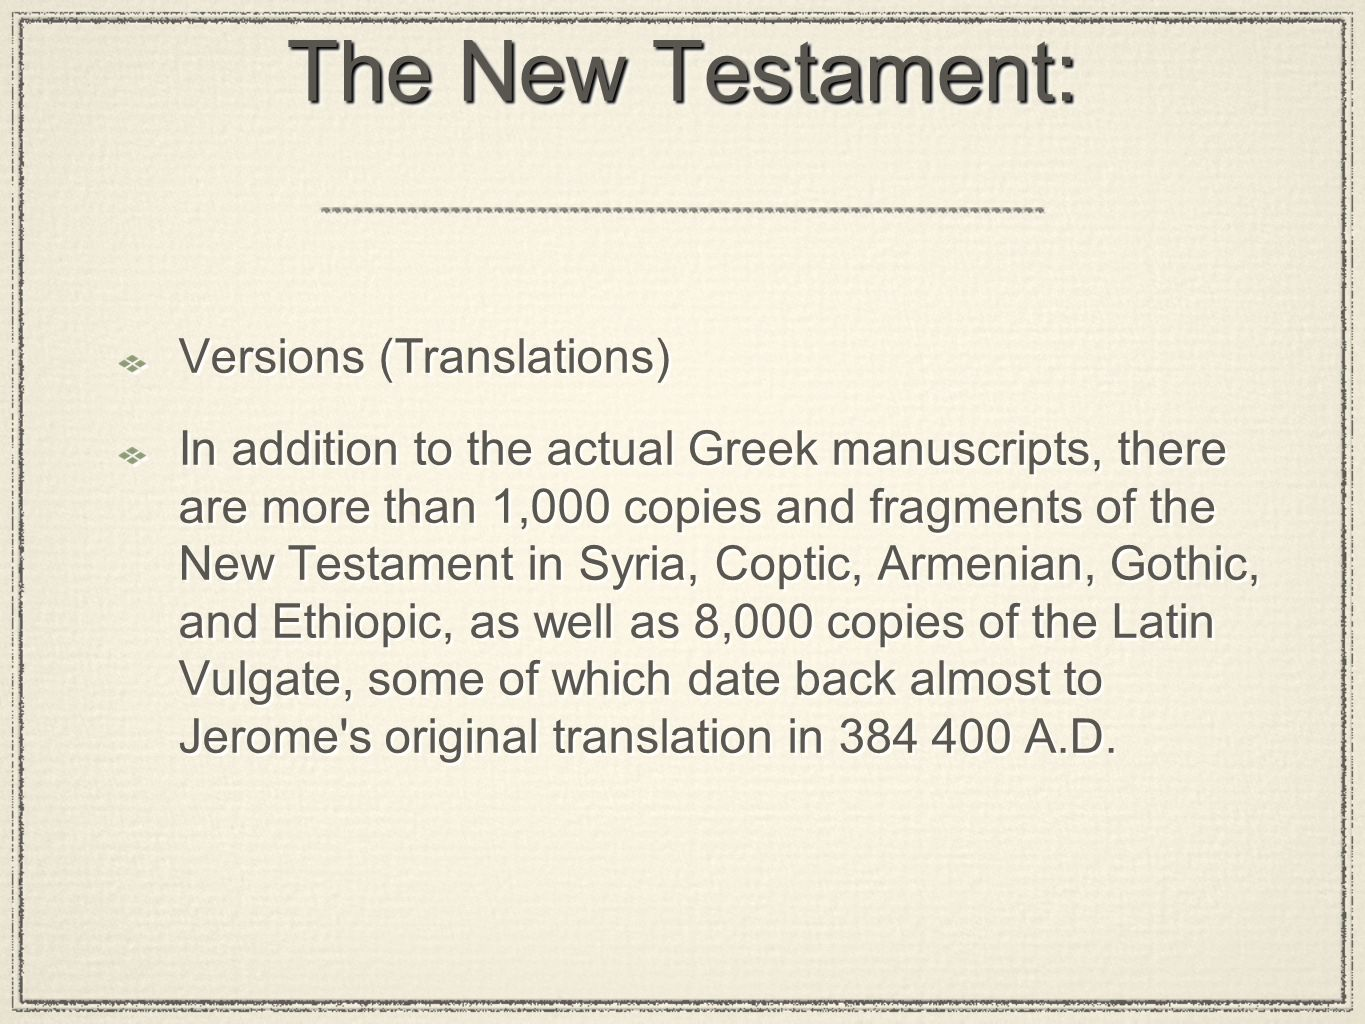 The New Testament: Versions (Translations) In addition to the actual Greek manuscripts, there are more than 1,000 copies and fragments of the New Test